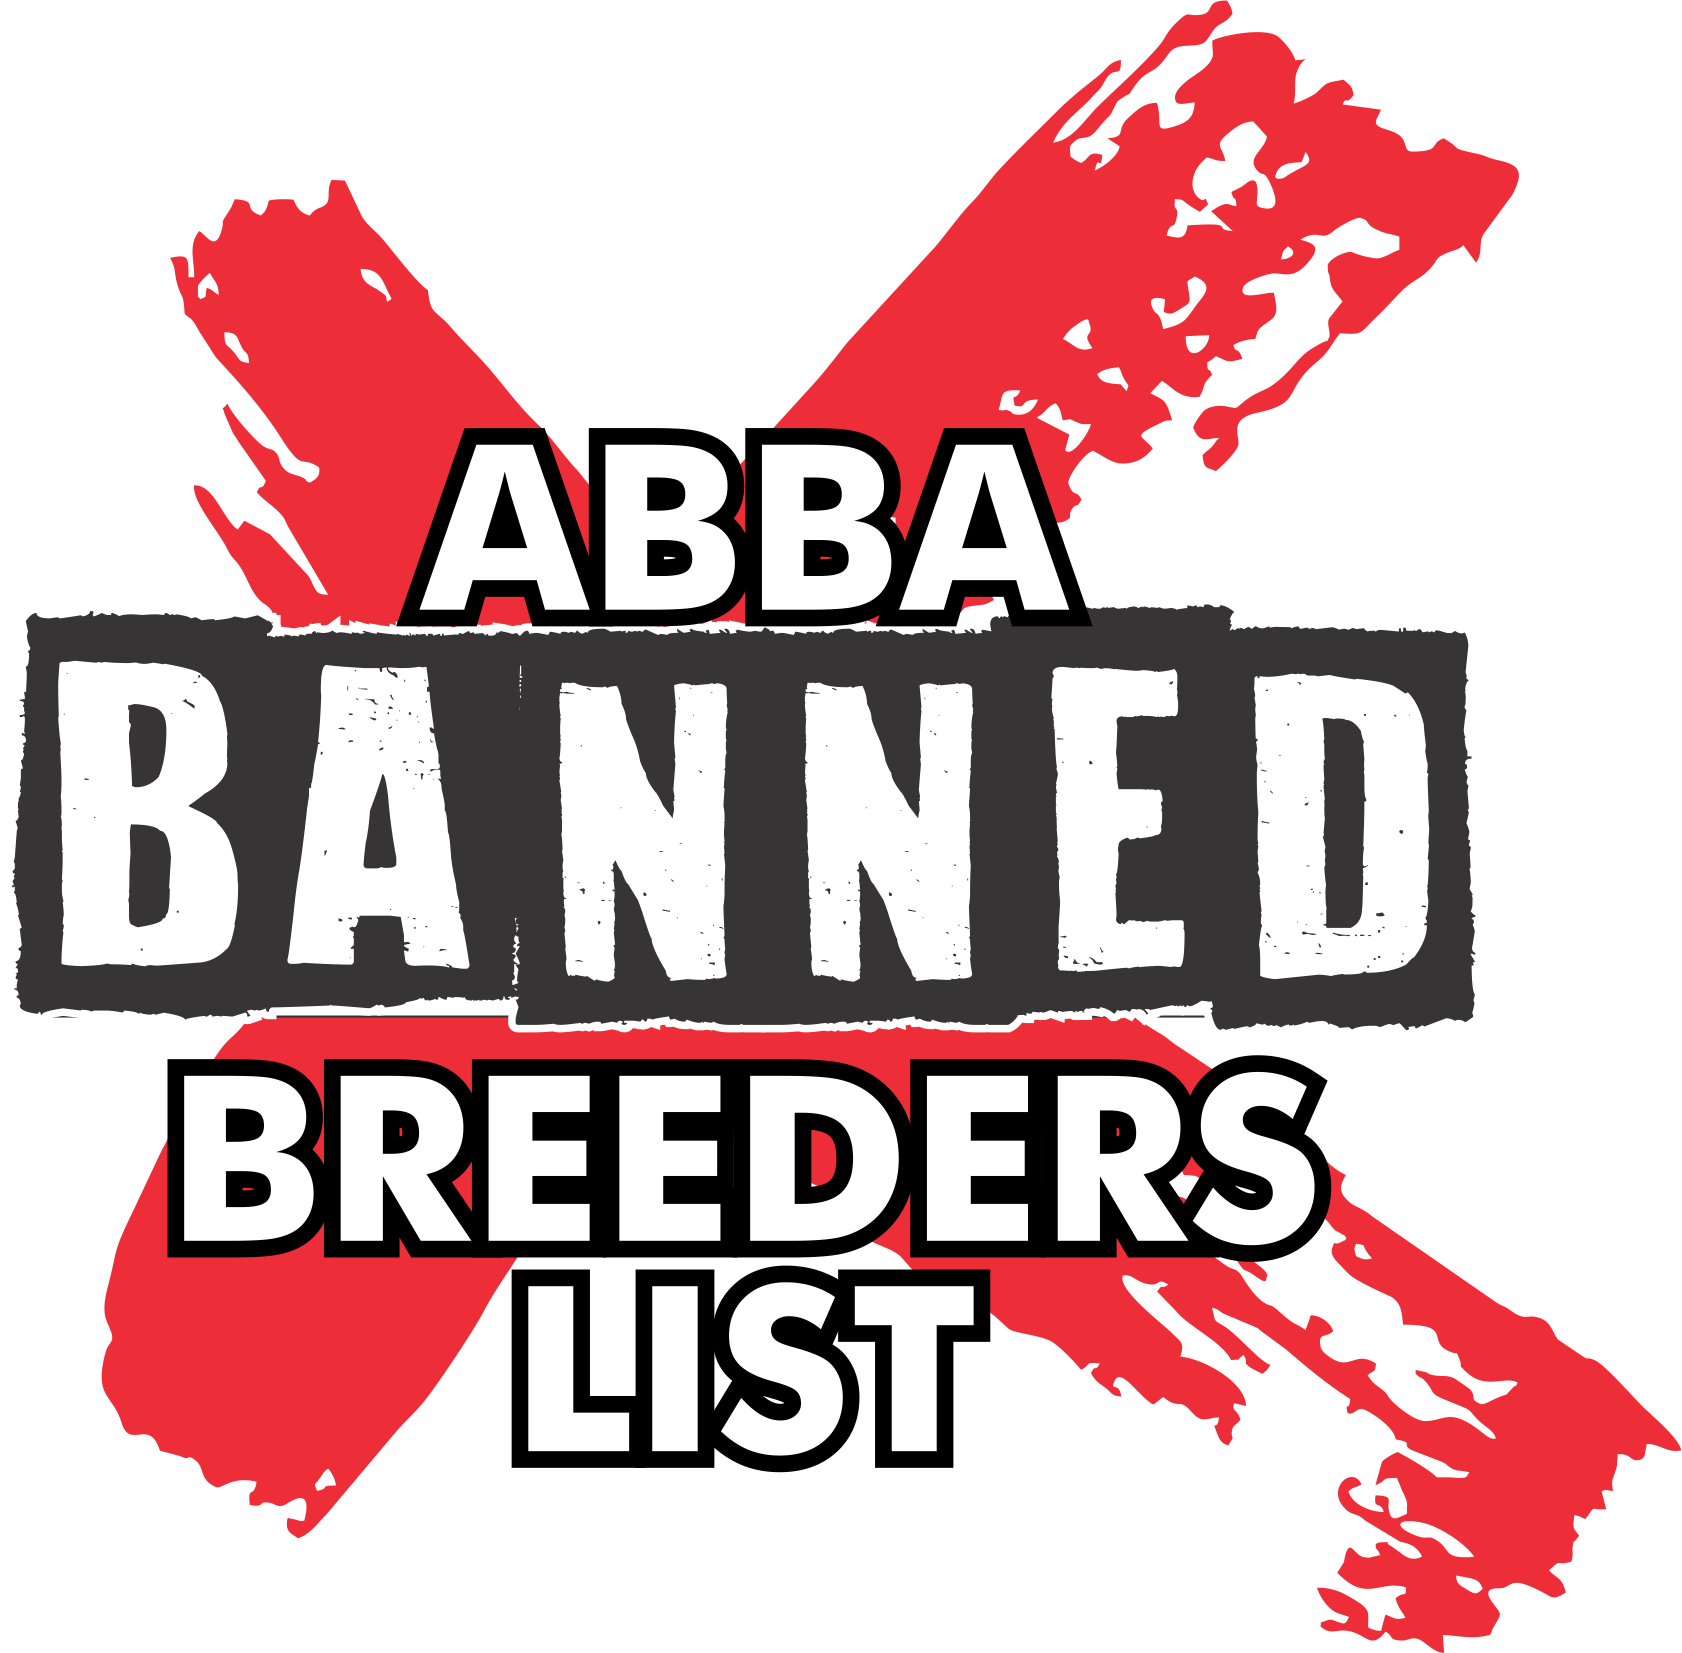 BANNED BREEDERS